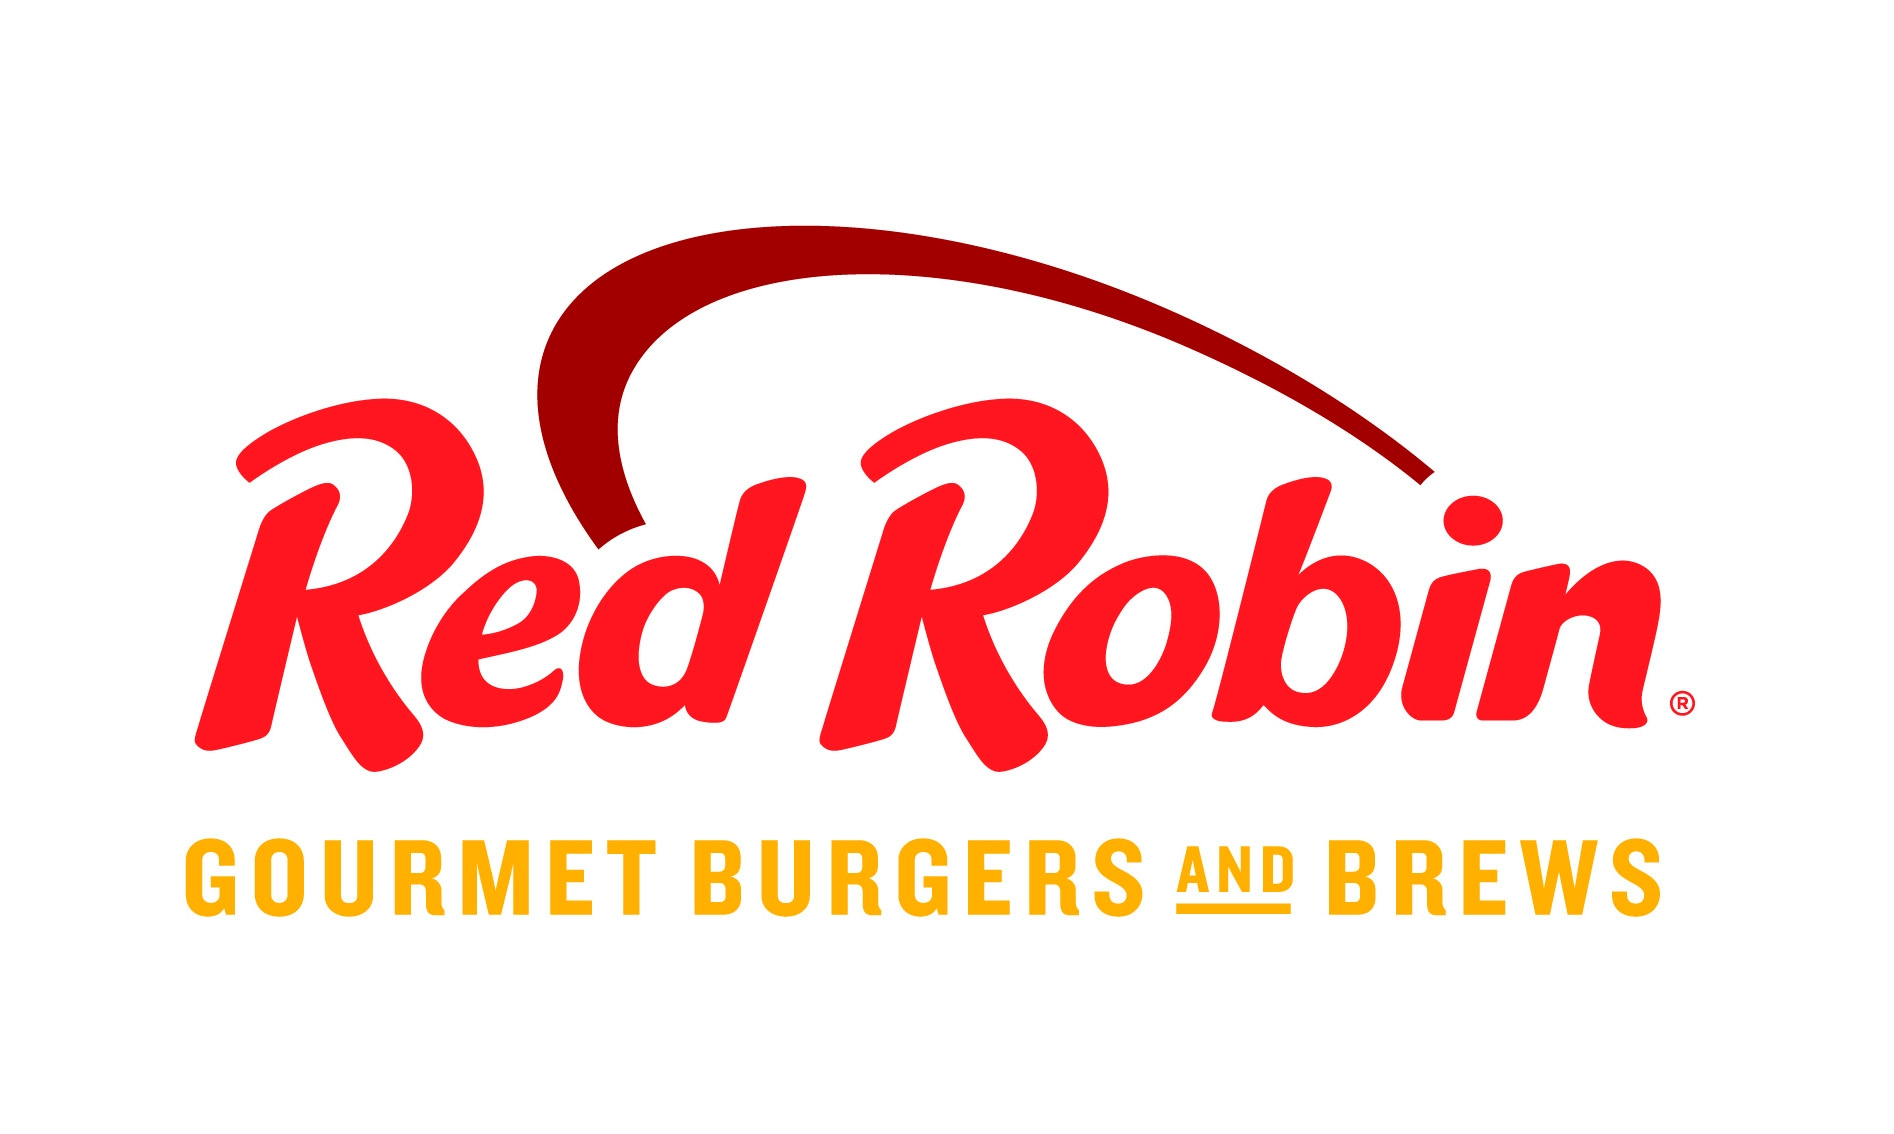 New Red Robin logo